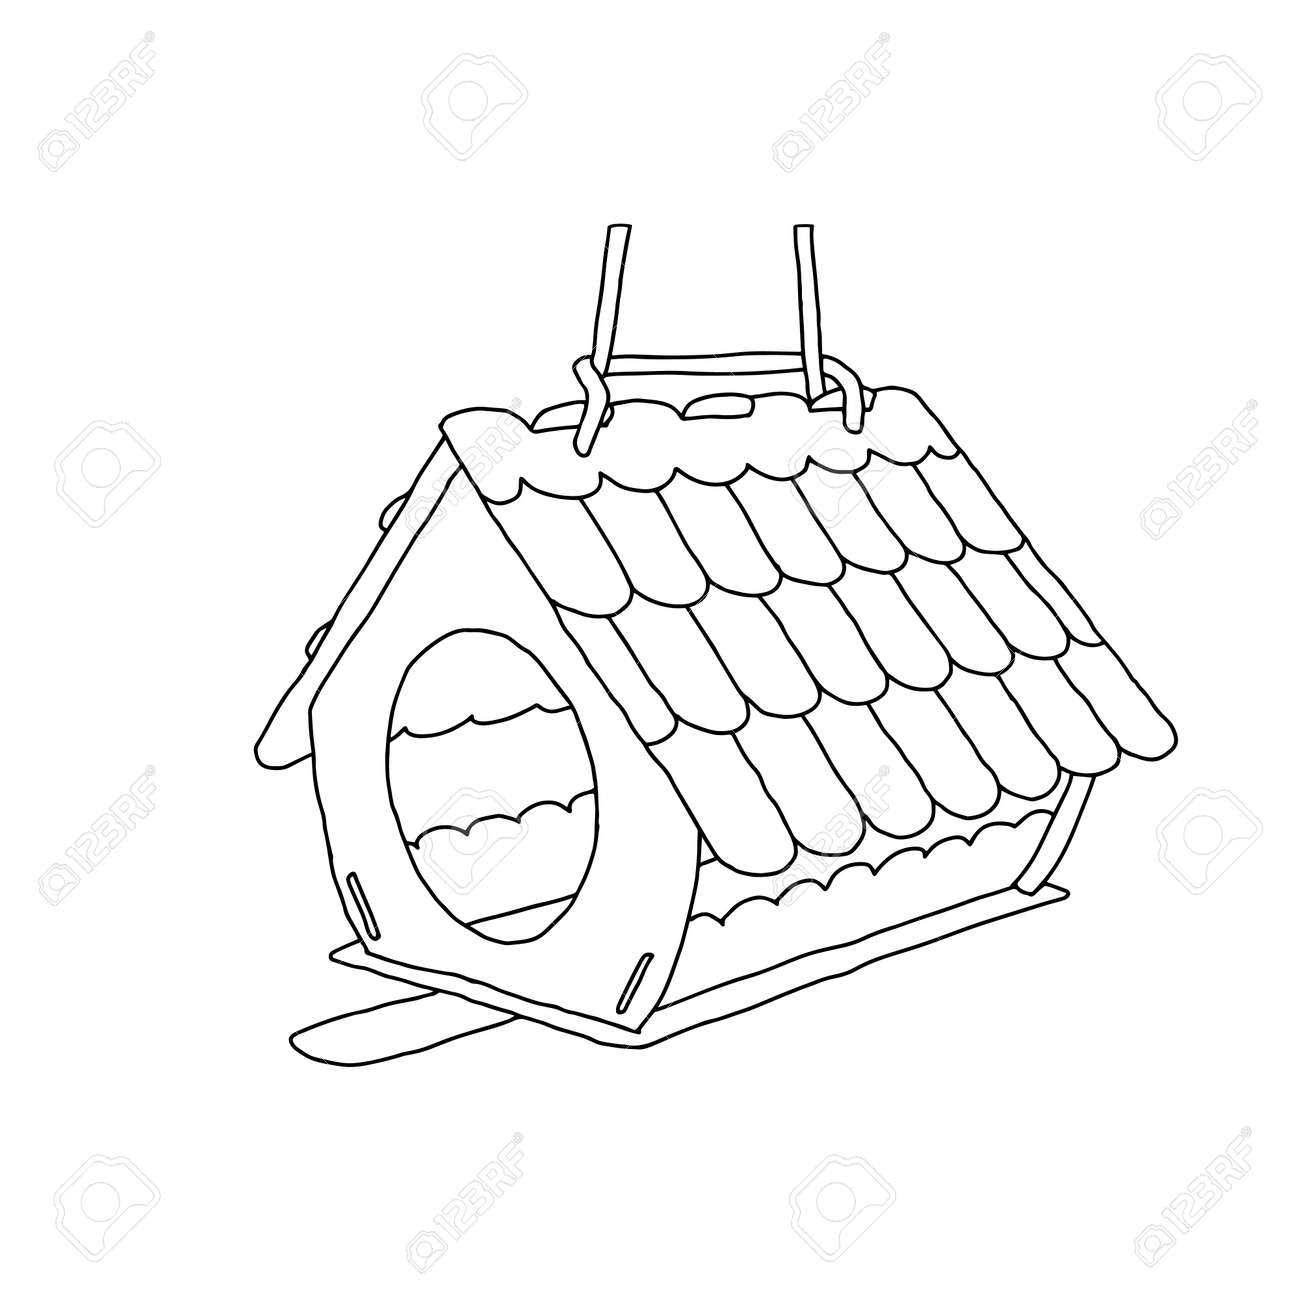 A Black hand drawn outline vector illustration of A birdhouse or squirrel house from new boards in the forest isolated on a white background. - 170194978